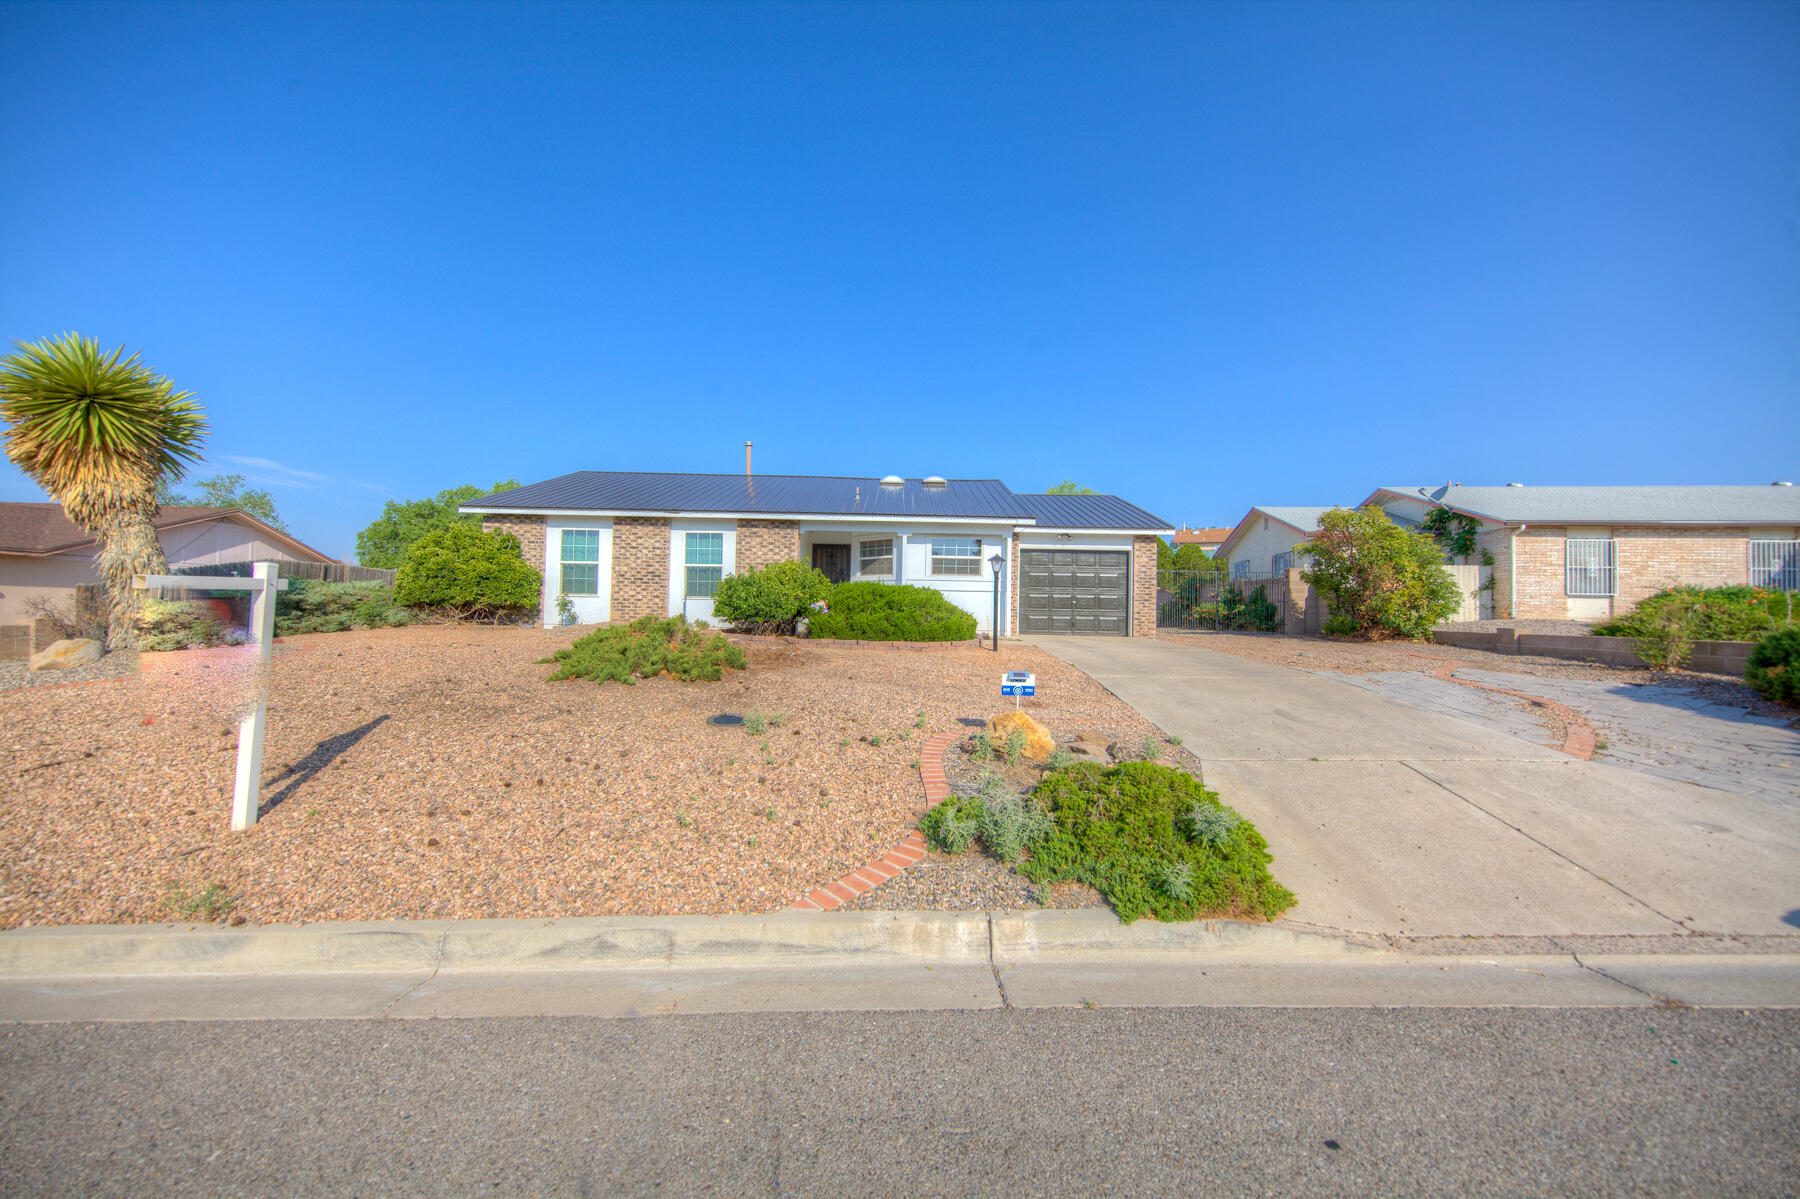 Great Rio Rancho single story home on large lot with back yard access. # bedrooms 1.75 baths 2 car garage open floor plan. Make offer today.